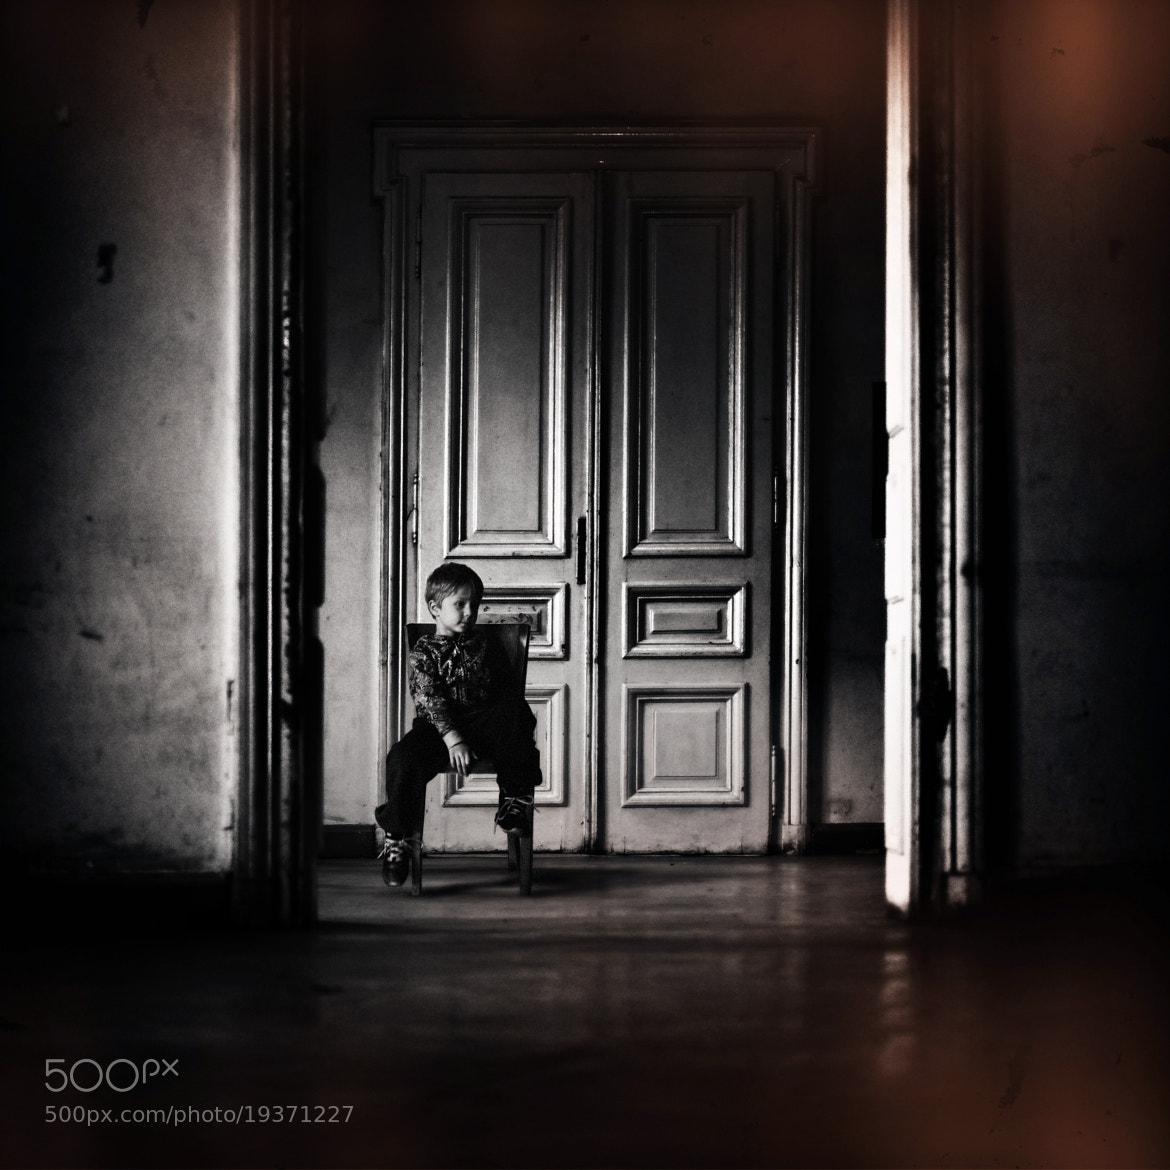 Photograph of boys and chairs by Dragan Todorović on 500px